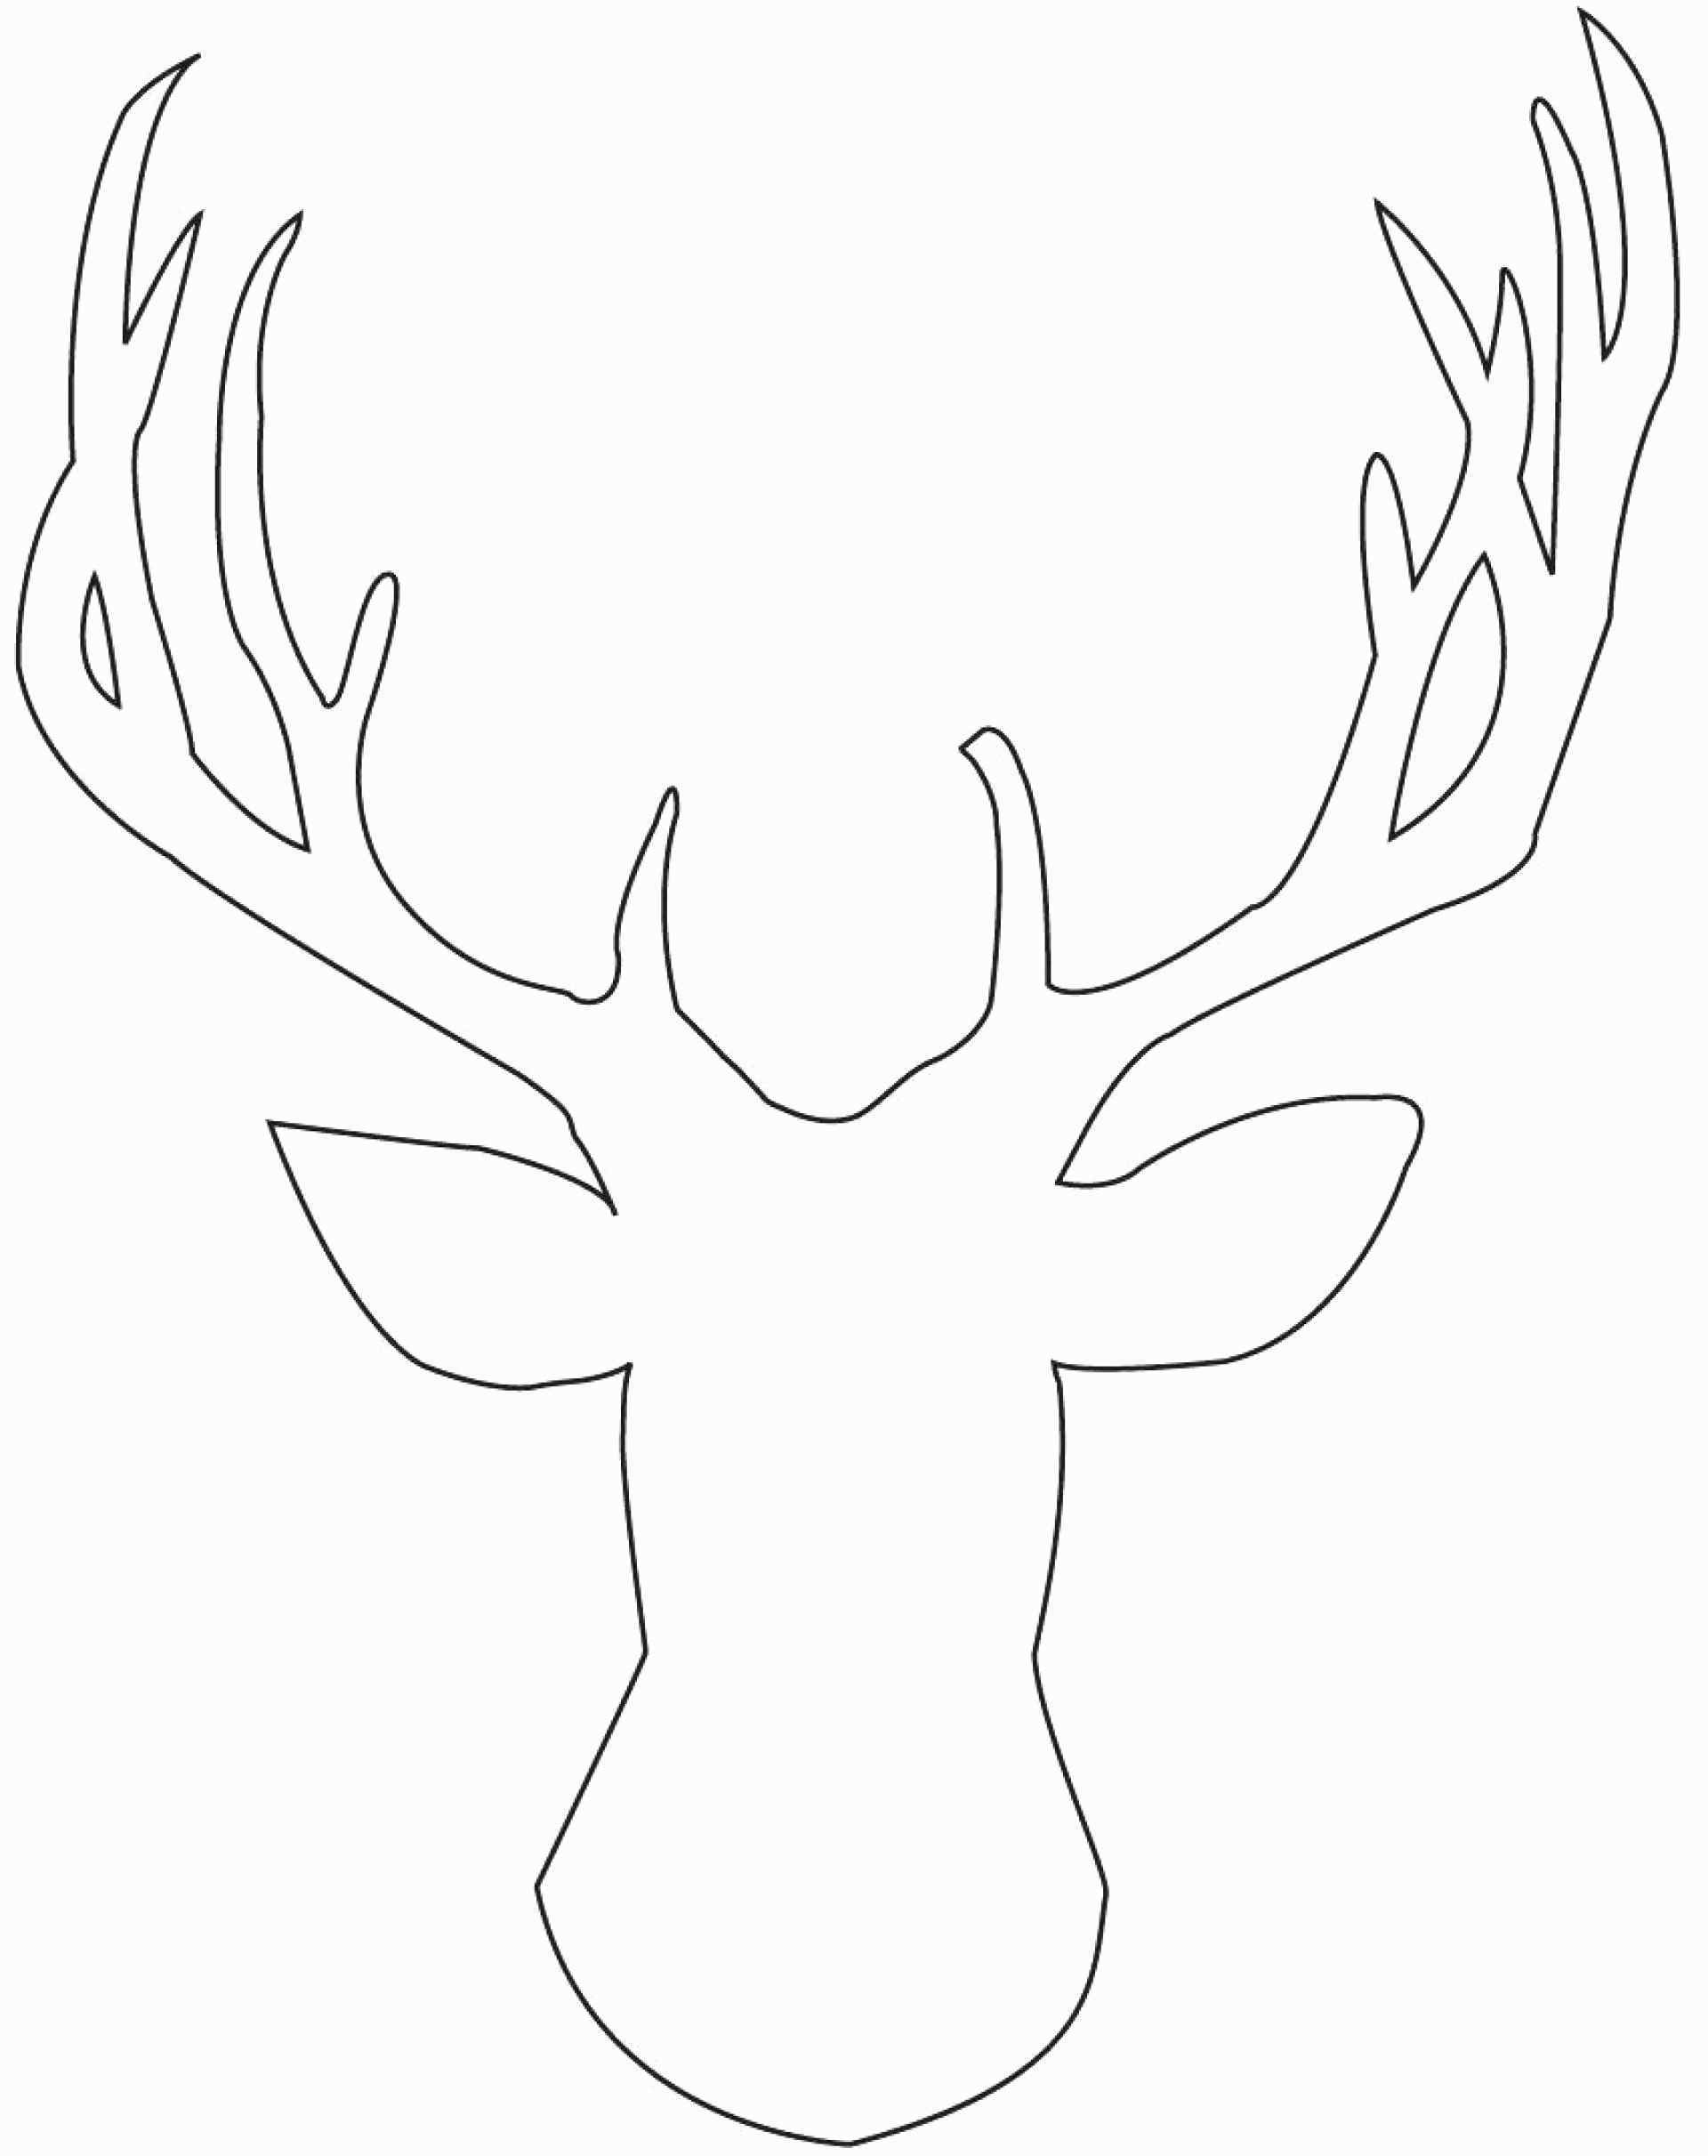 Reindeer Antlers Template Luxury Printable Arrowhead Template - Reindeer Antlers Template Free Printable